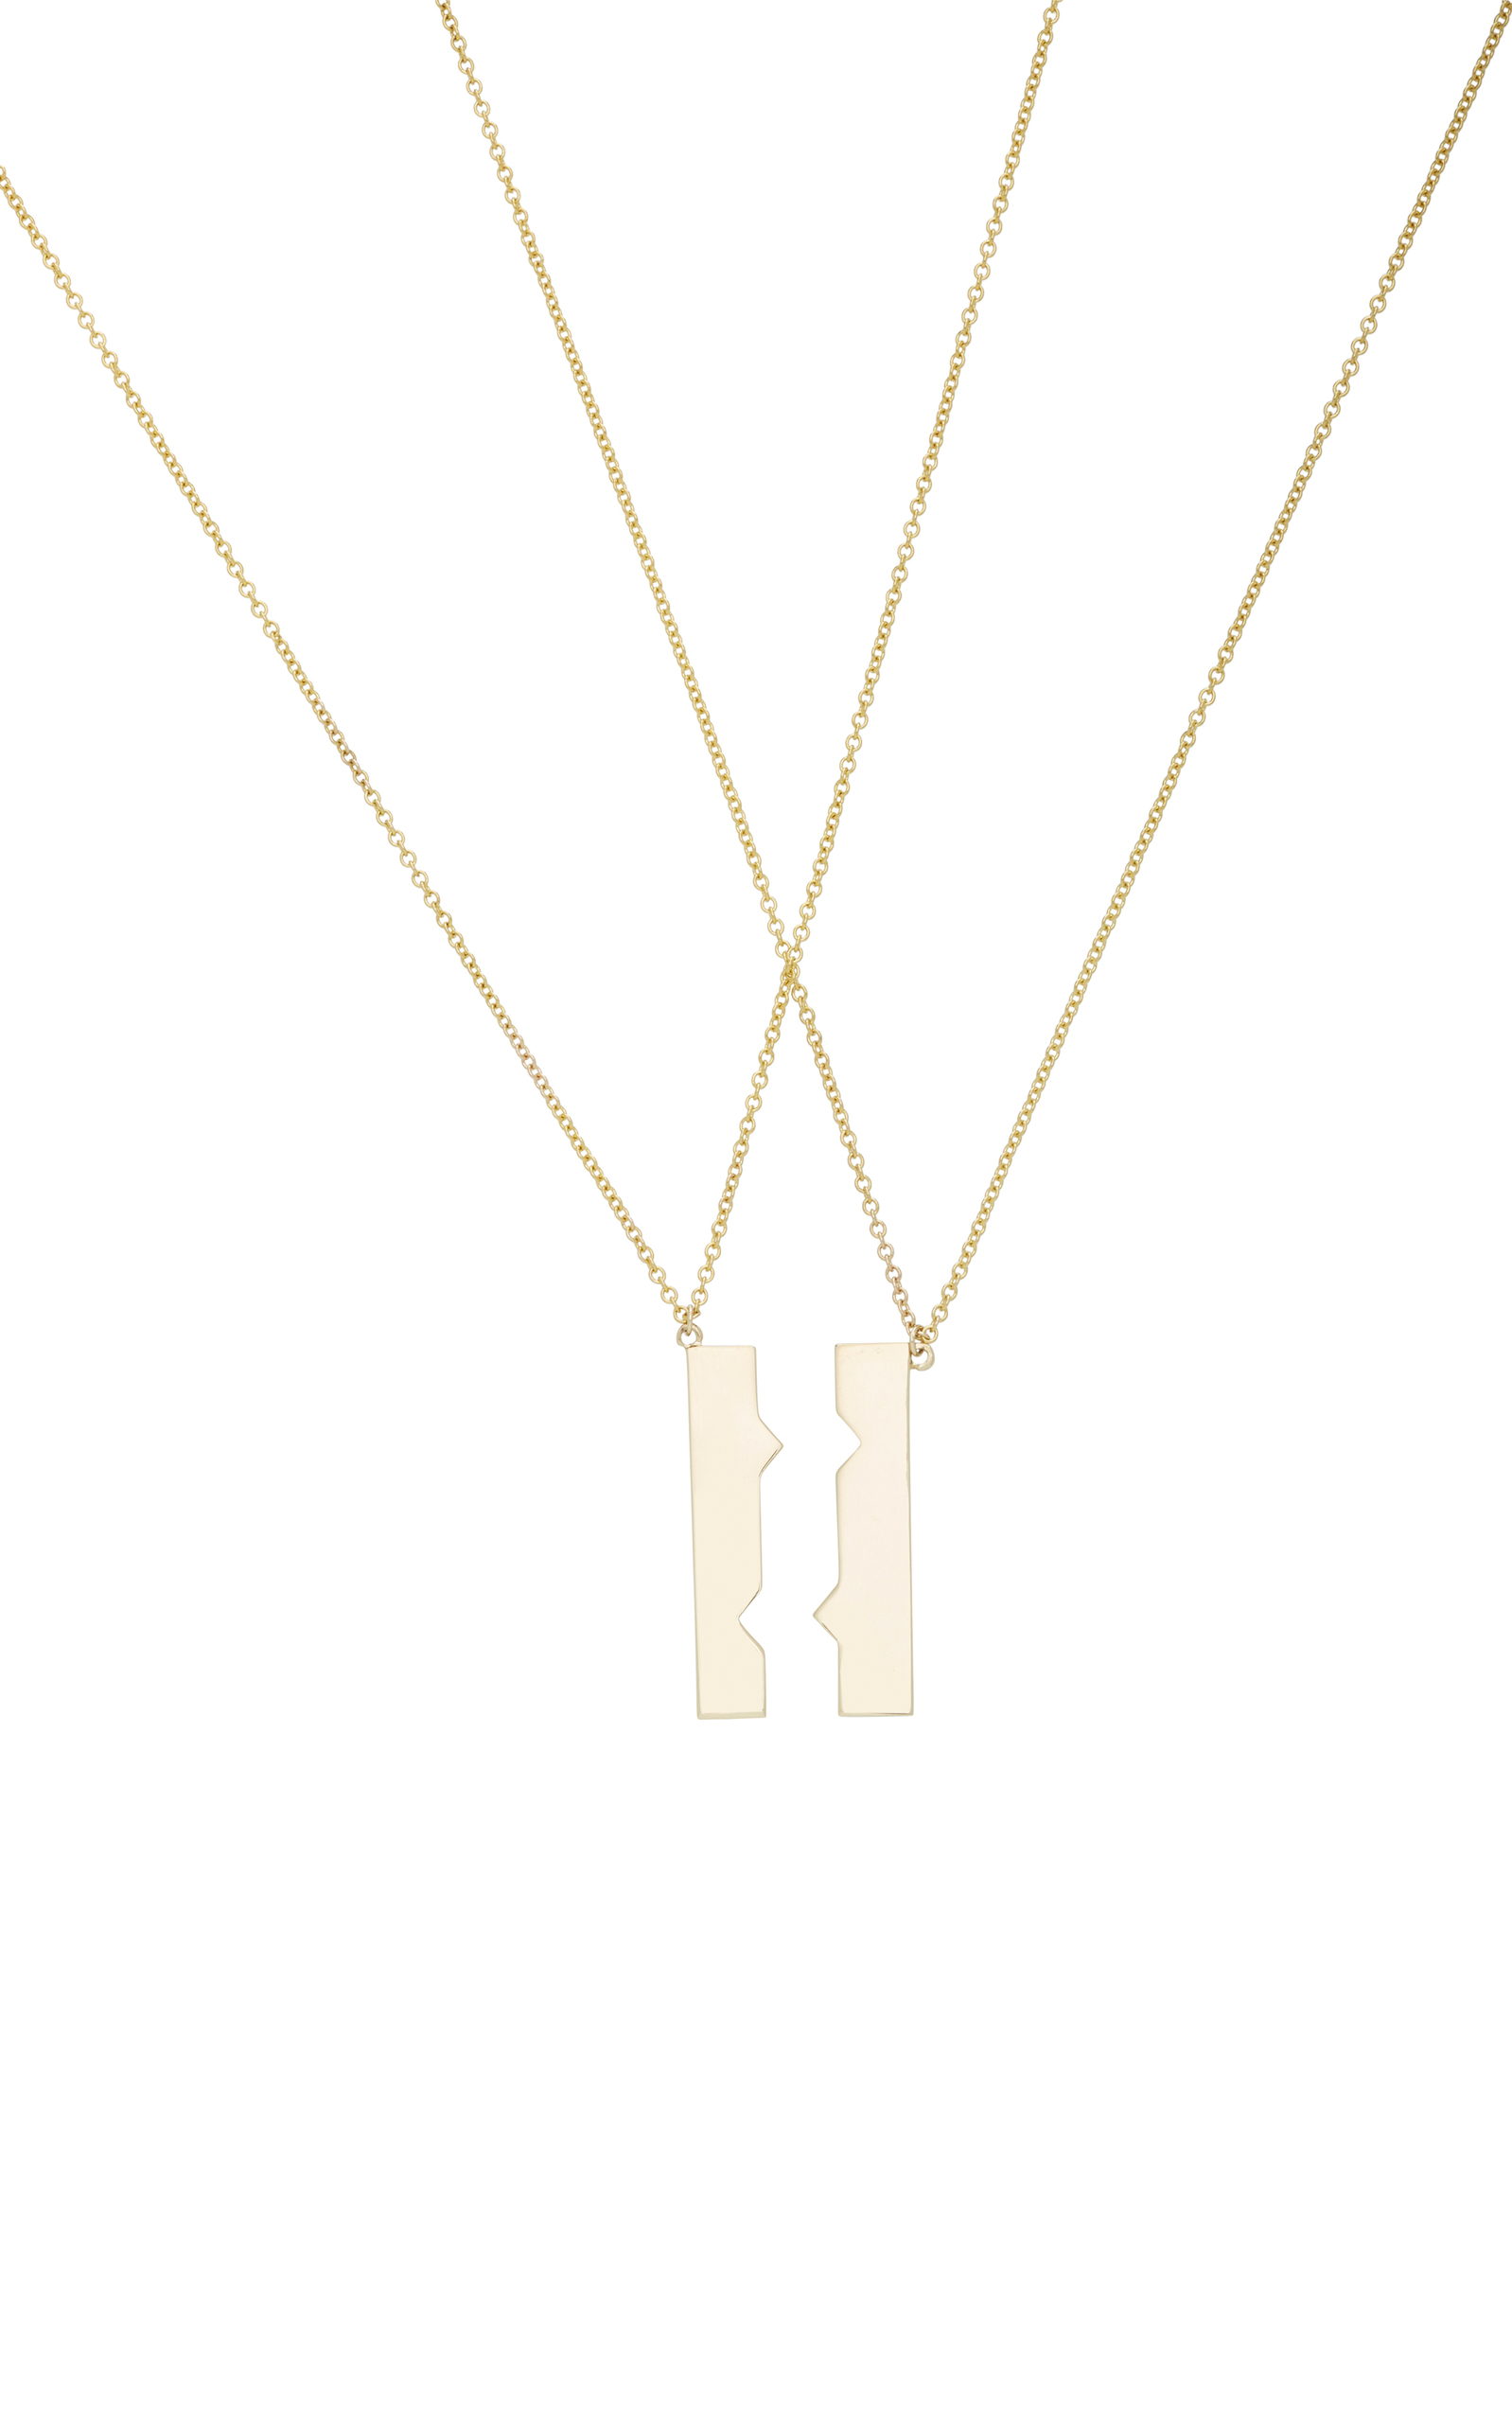 more white chains necklace s gold diamond views cross child pendant